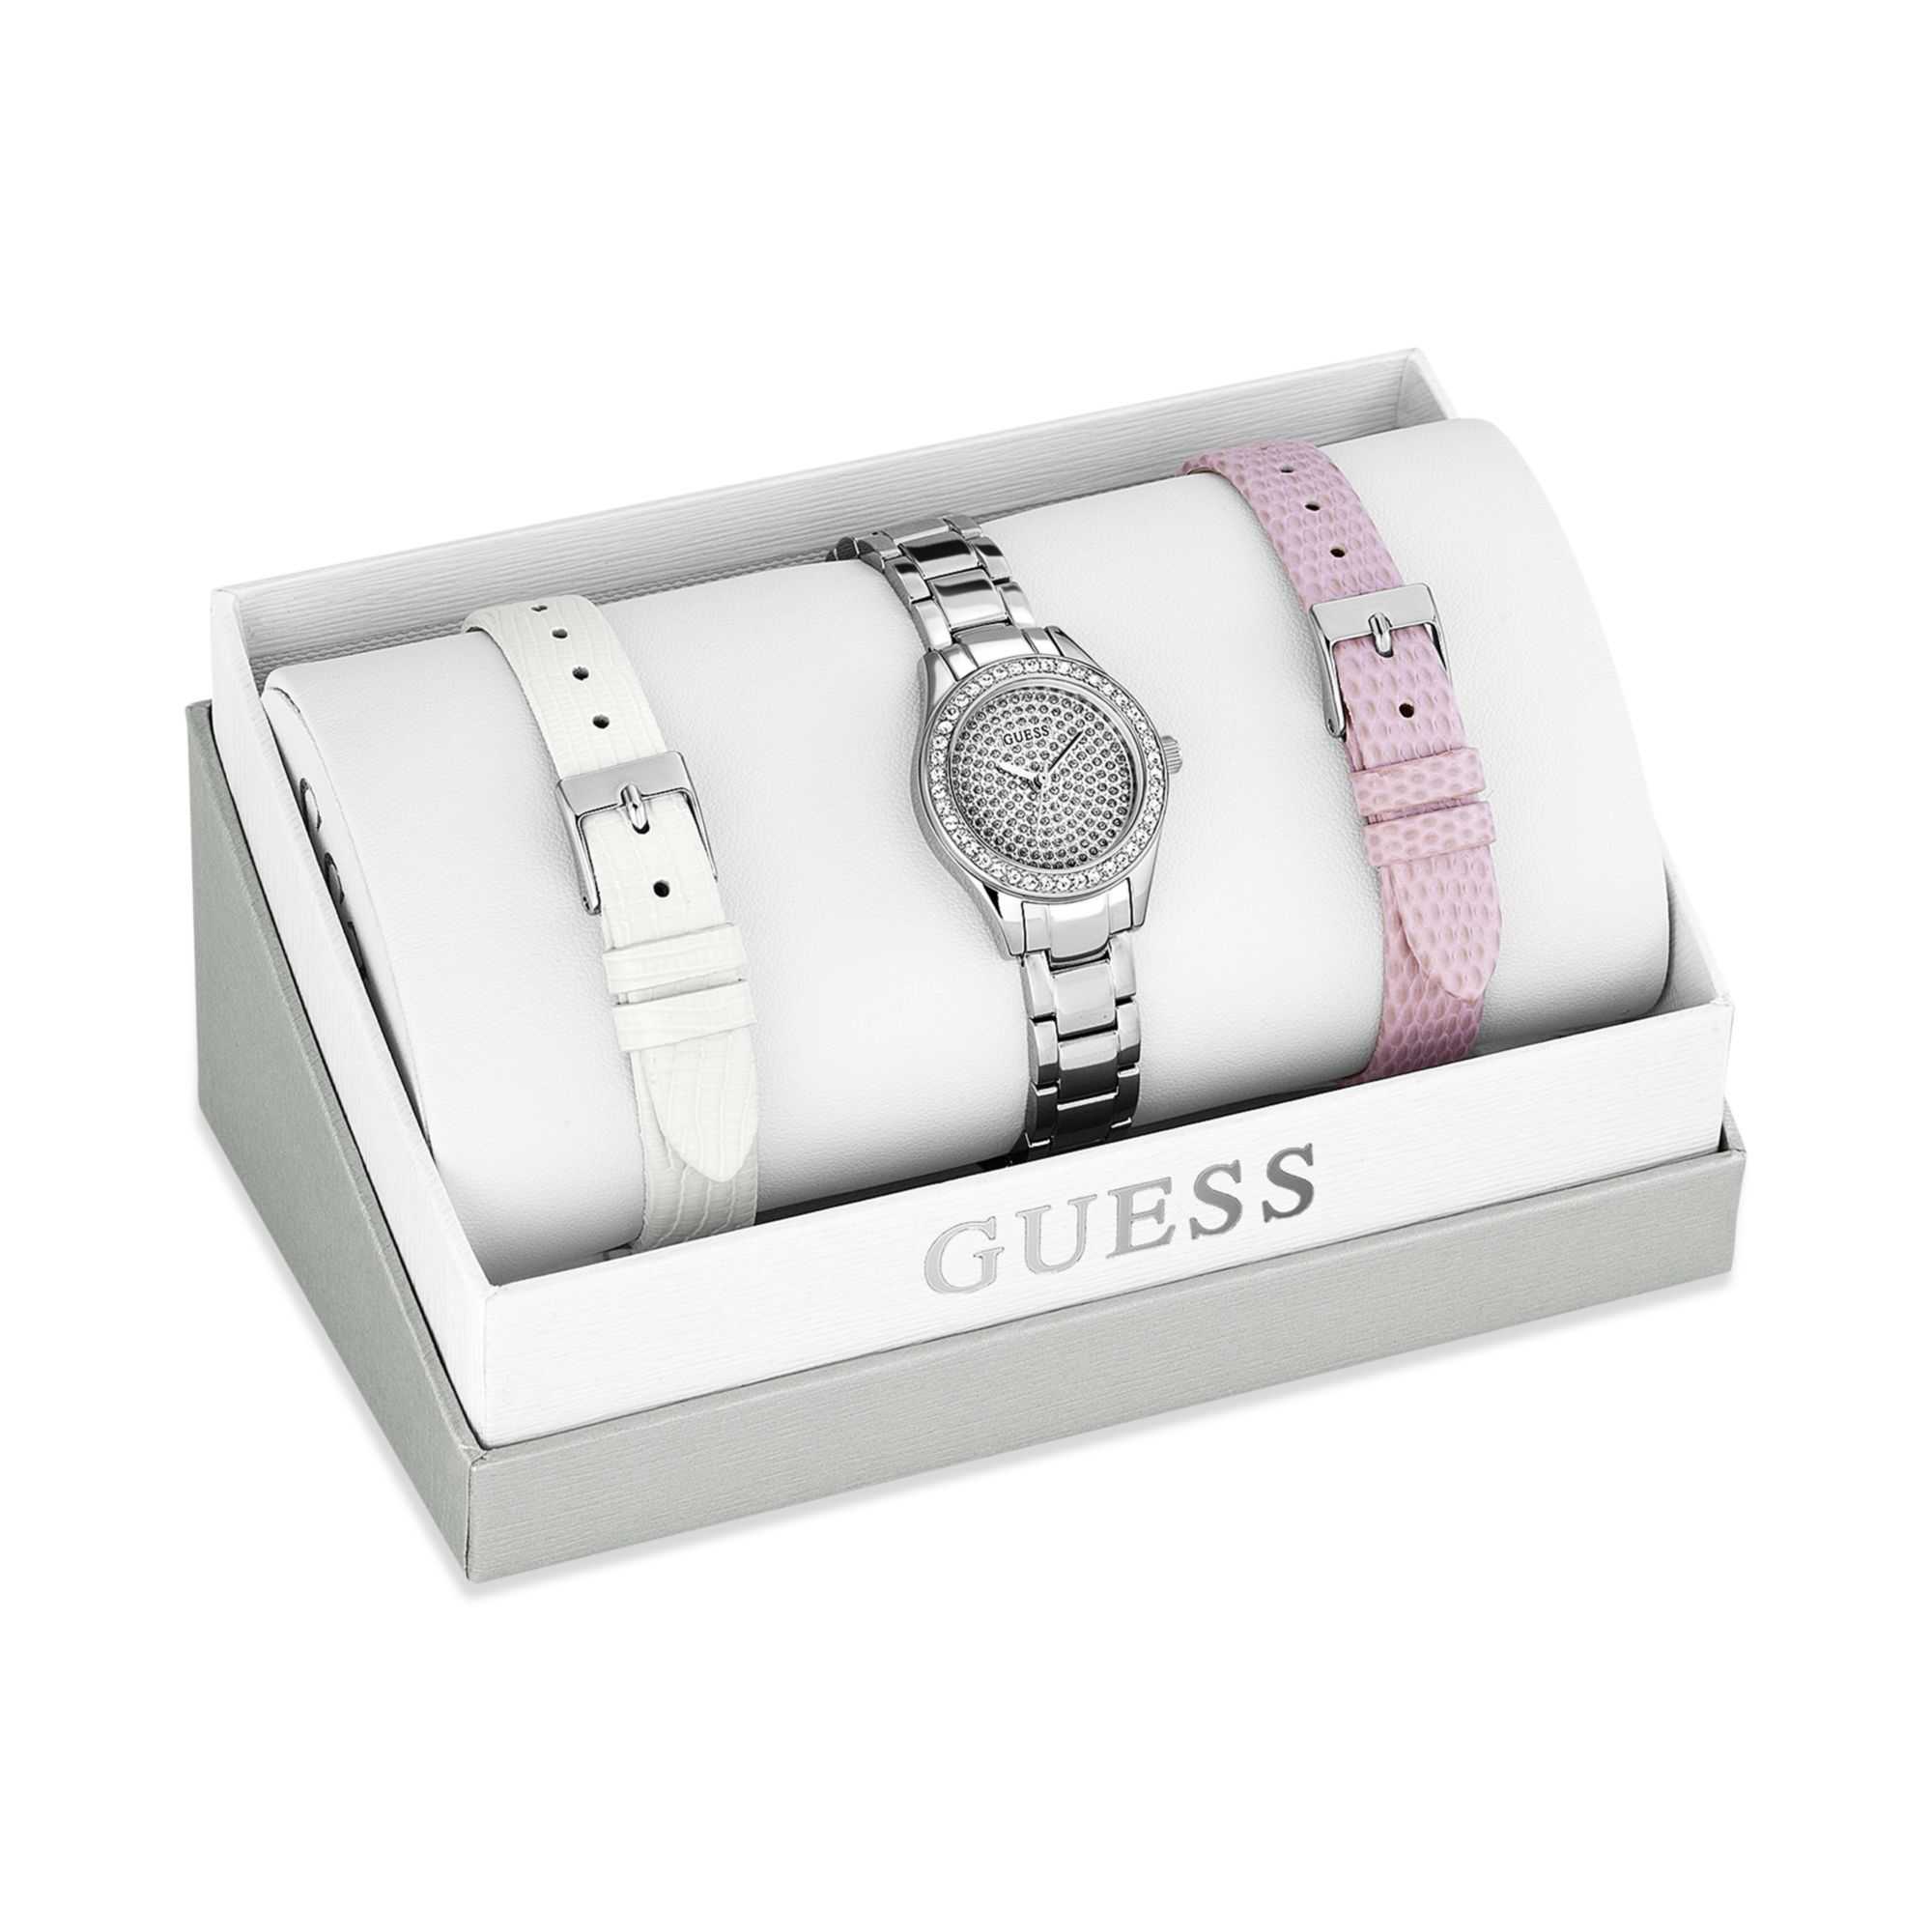 how to set the day on a guess watch